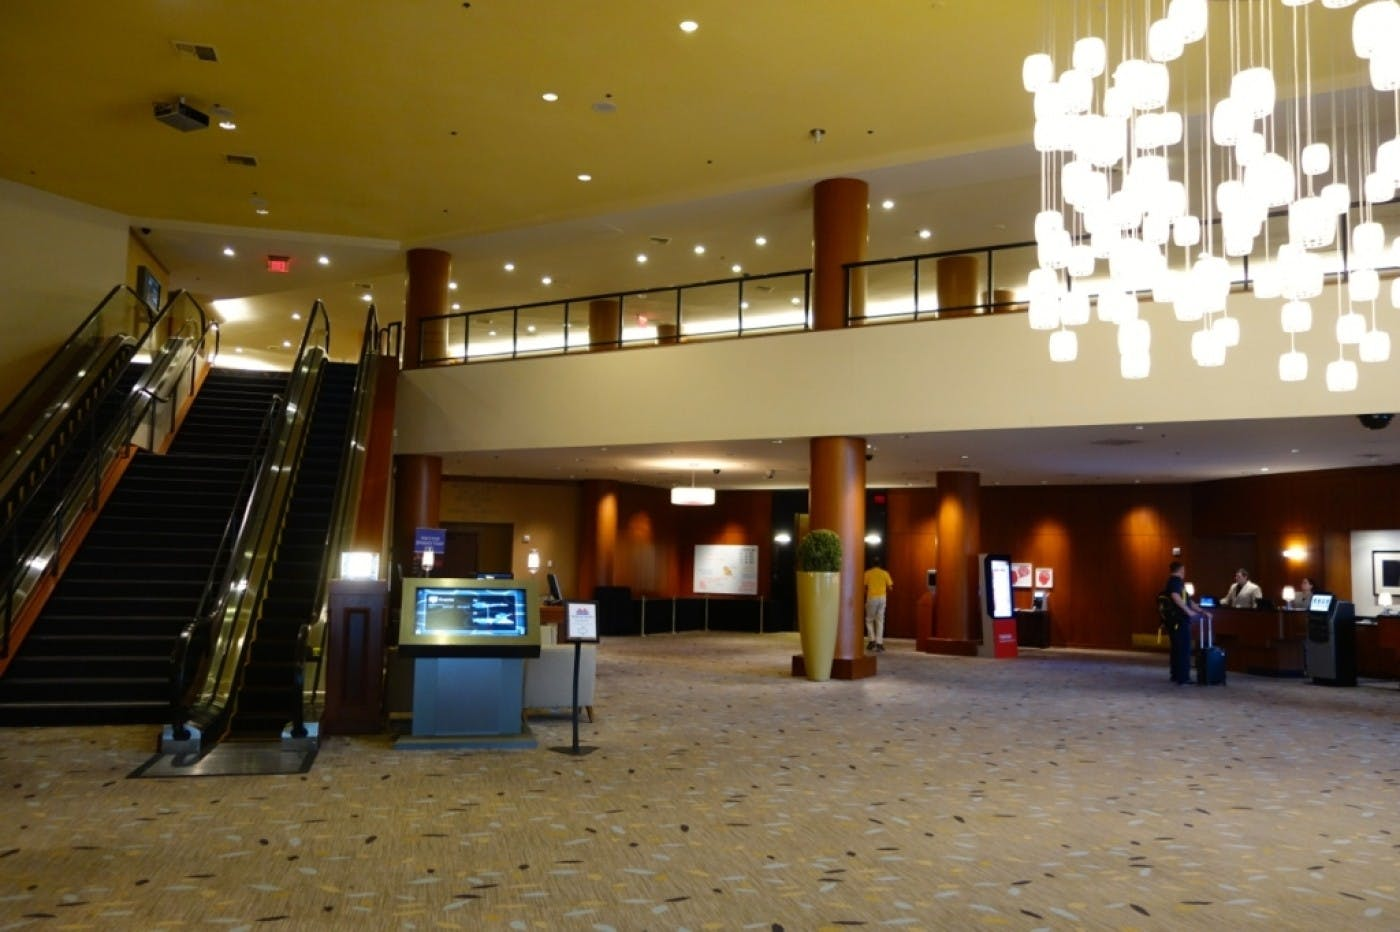 ScreenCloud Empowers Staff at Hyatt Regency San Francisco to Manage the Hotel's Many Screens with Dynamic Content